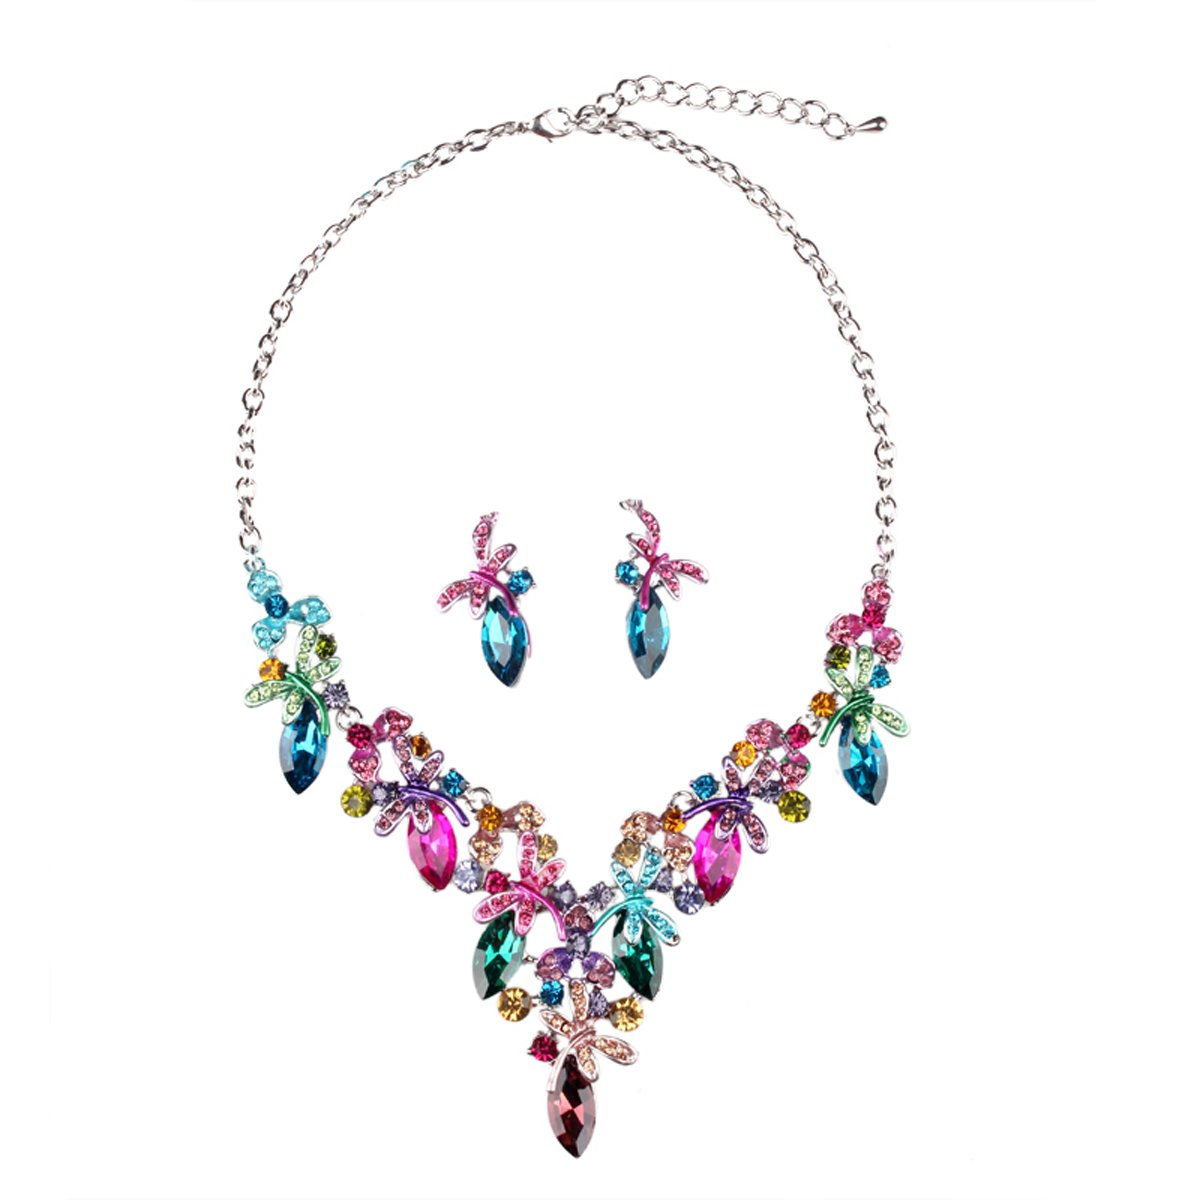 Hamer Costume Jewelry Hand Painting Crystal Choker Pendant Statement Chain Charm Necklace Earrings Sets Women (Multicolor, Alloy)